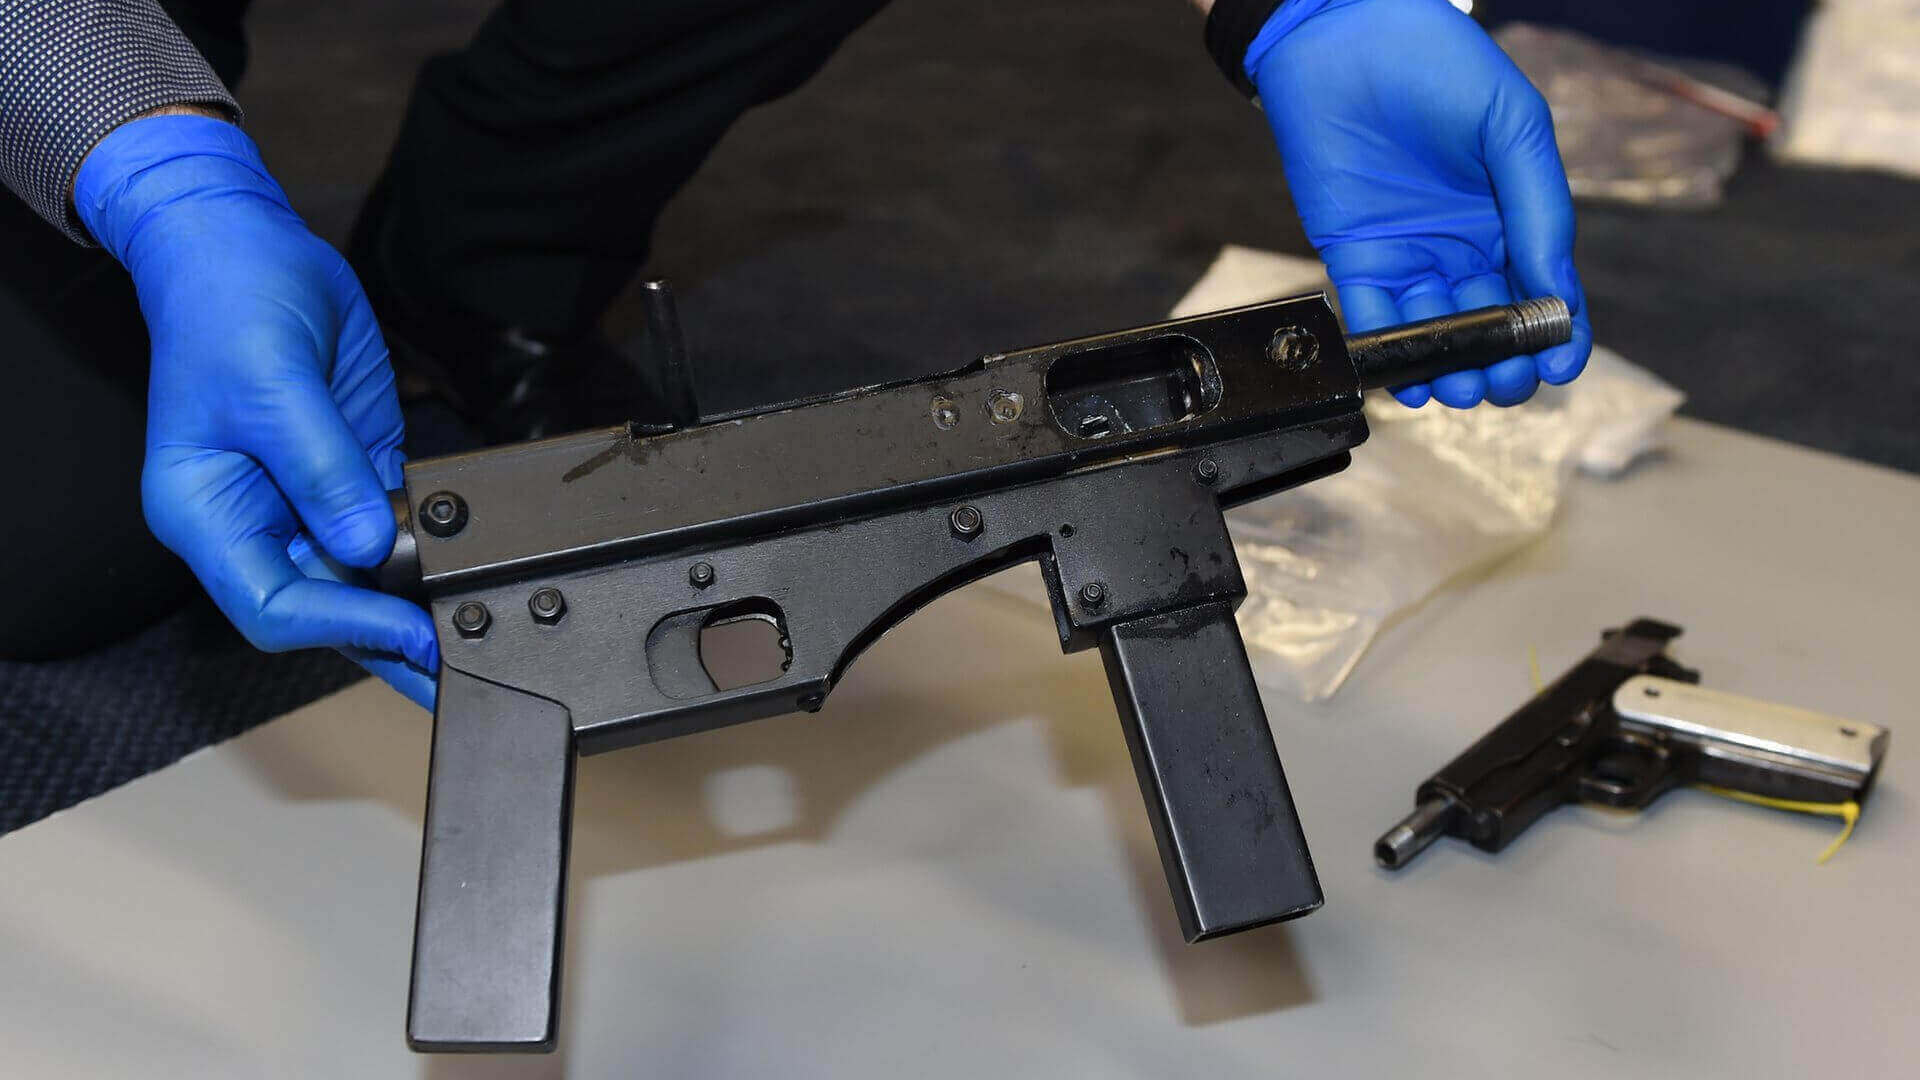 3D Printed Submachine Guns Found in Drug Raids in Australia | All3DP